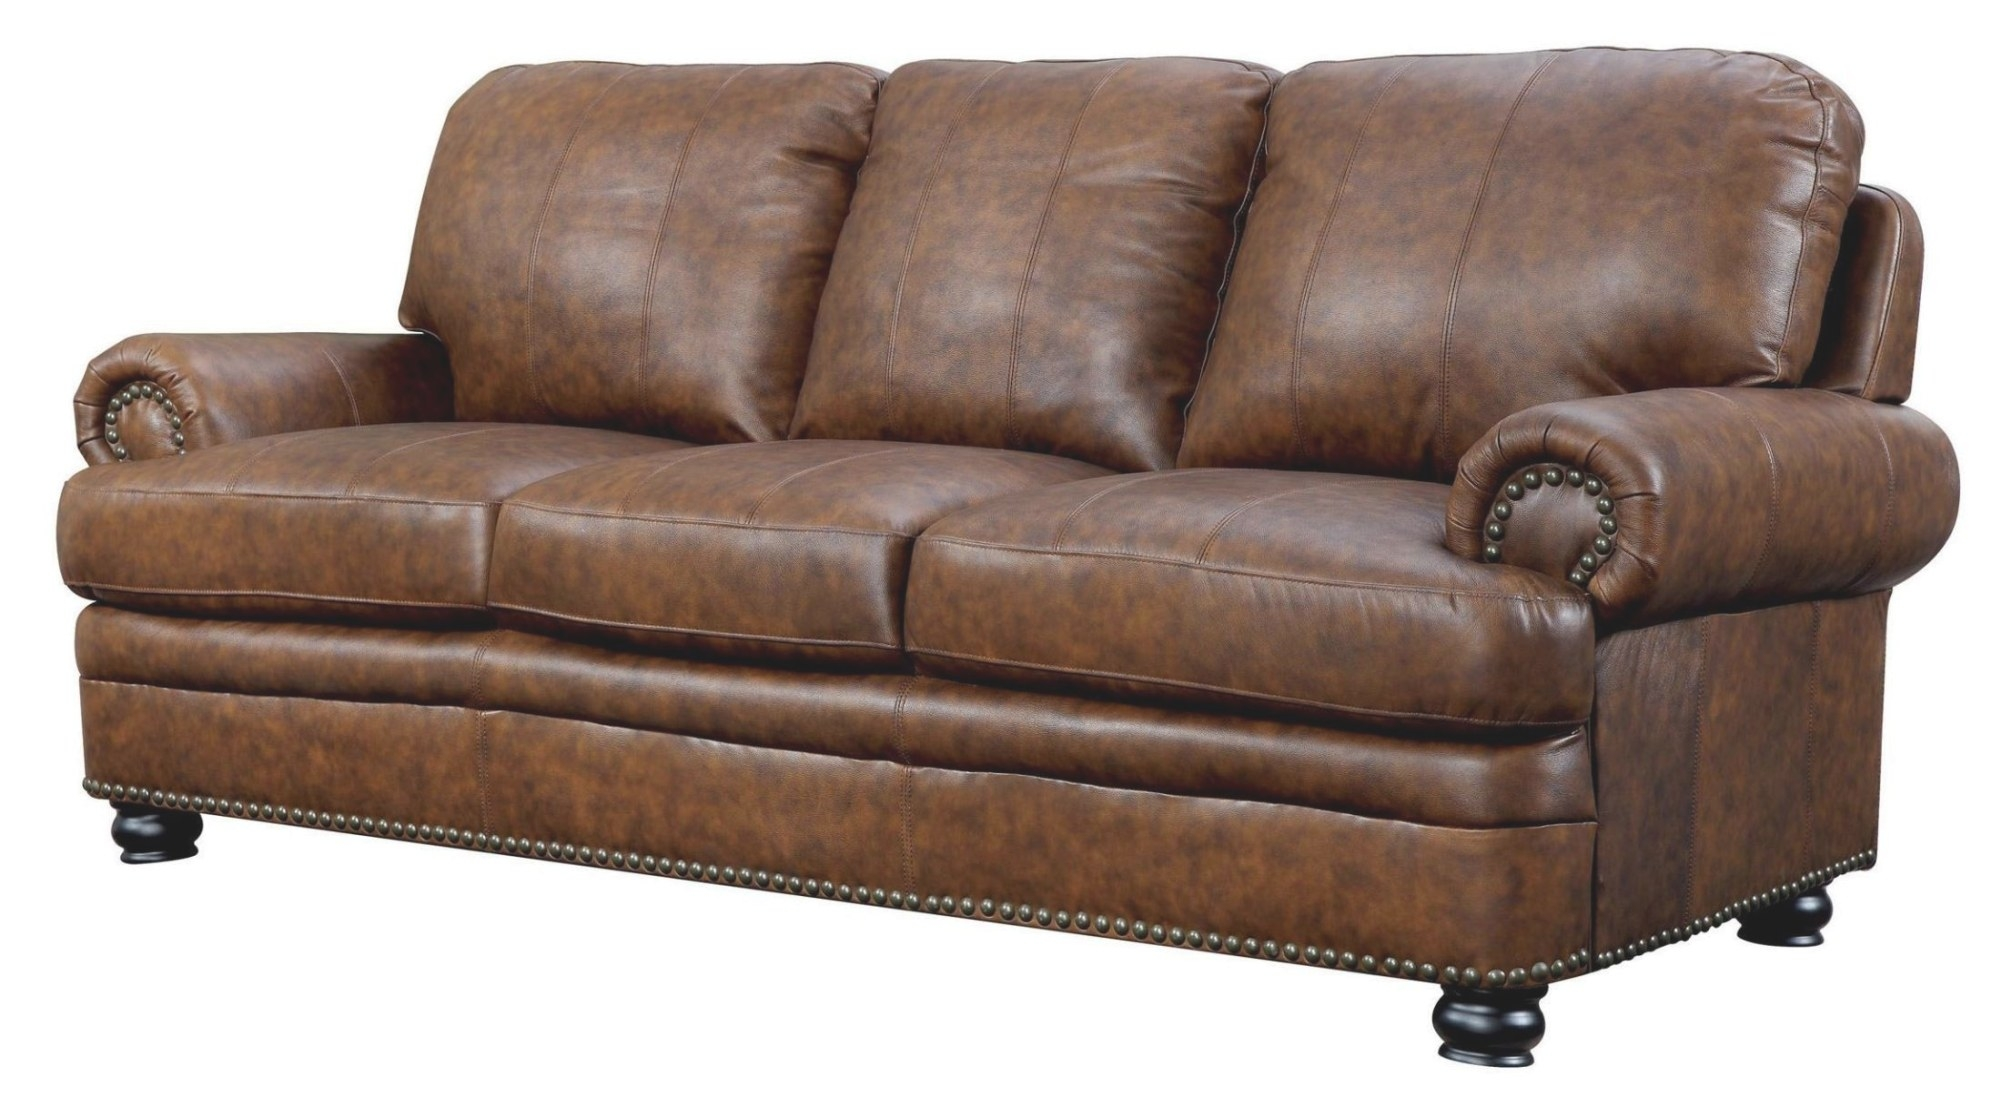 Rheinhardt Top Grain Leather Sofa - 1Stopbedrooms. intended for Top Grain Leather Sectional